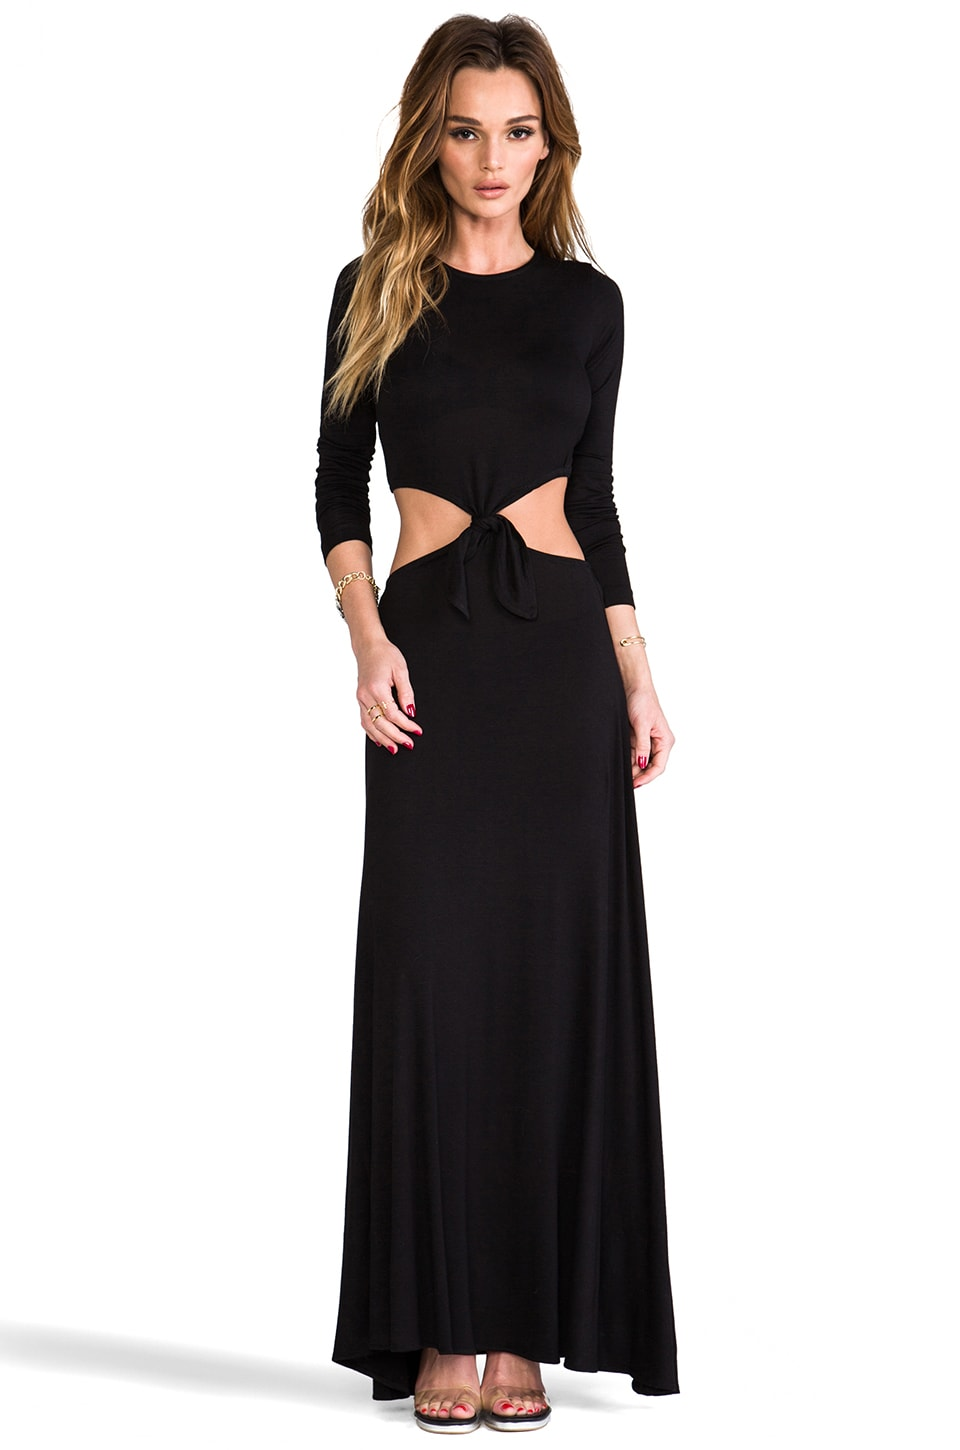 Naven Casuals Long Sleeve Knotted Maxi Dress in Black